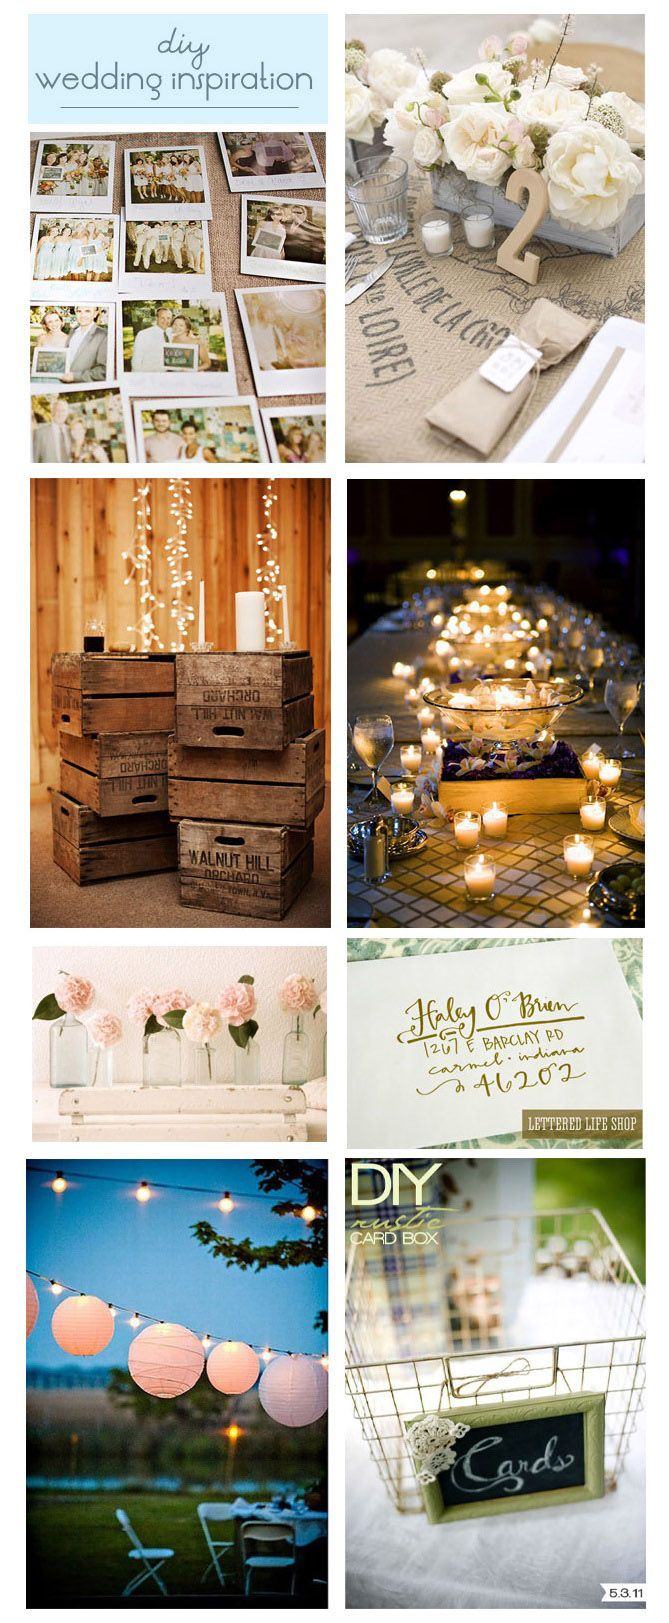 Need some inspiration for your wedding check out these diy